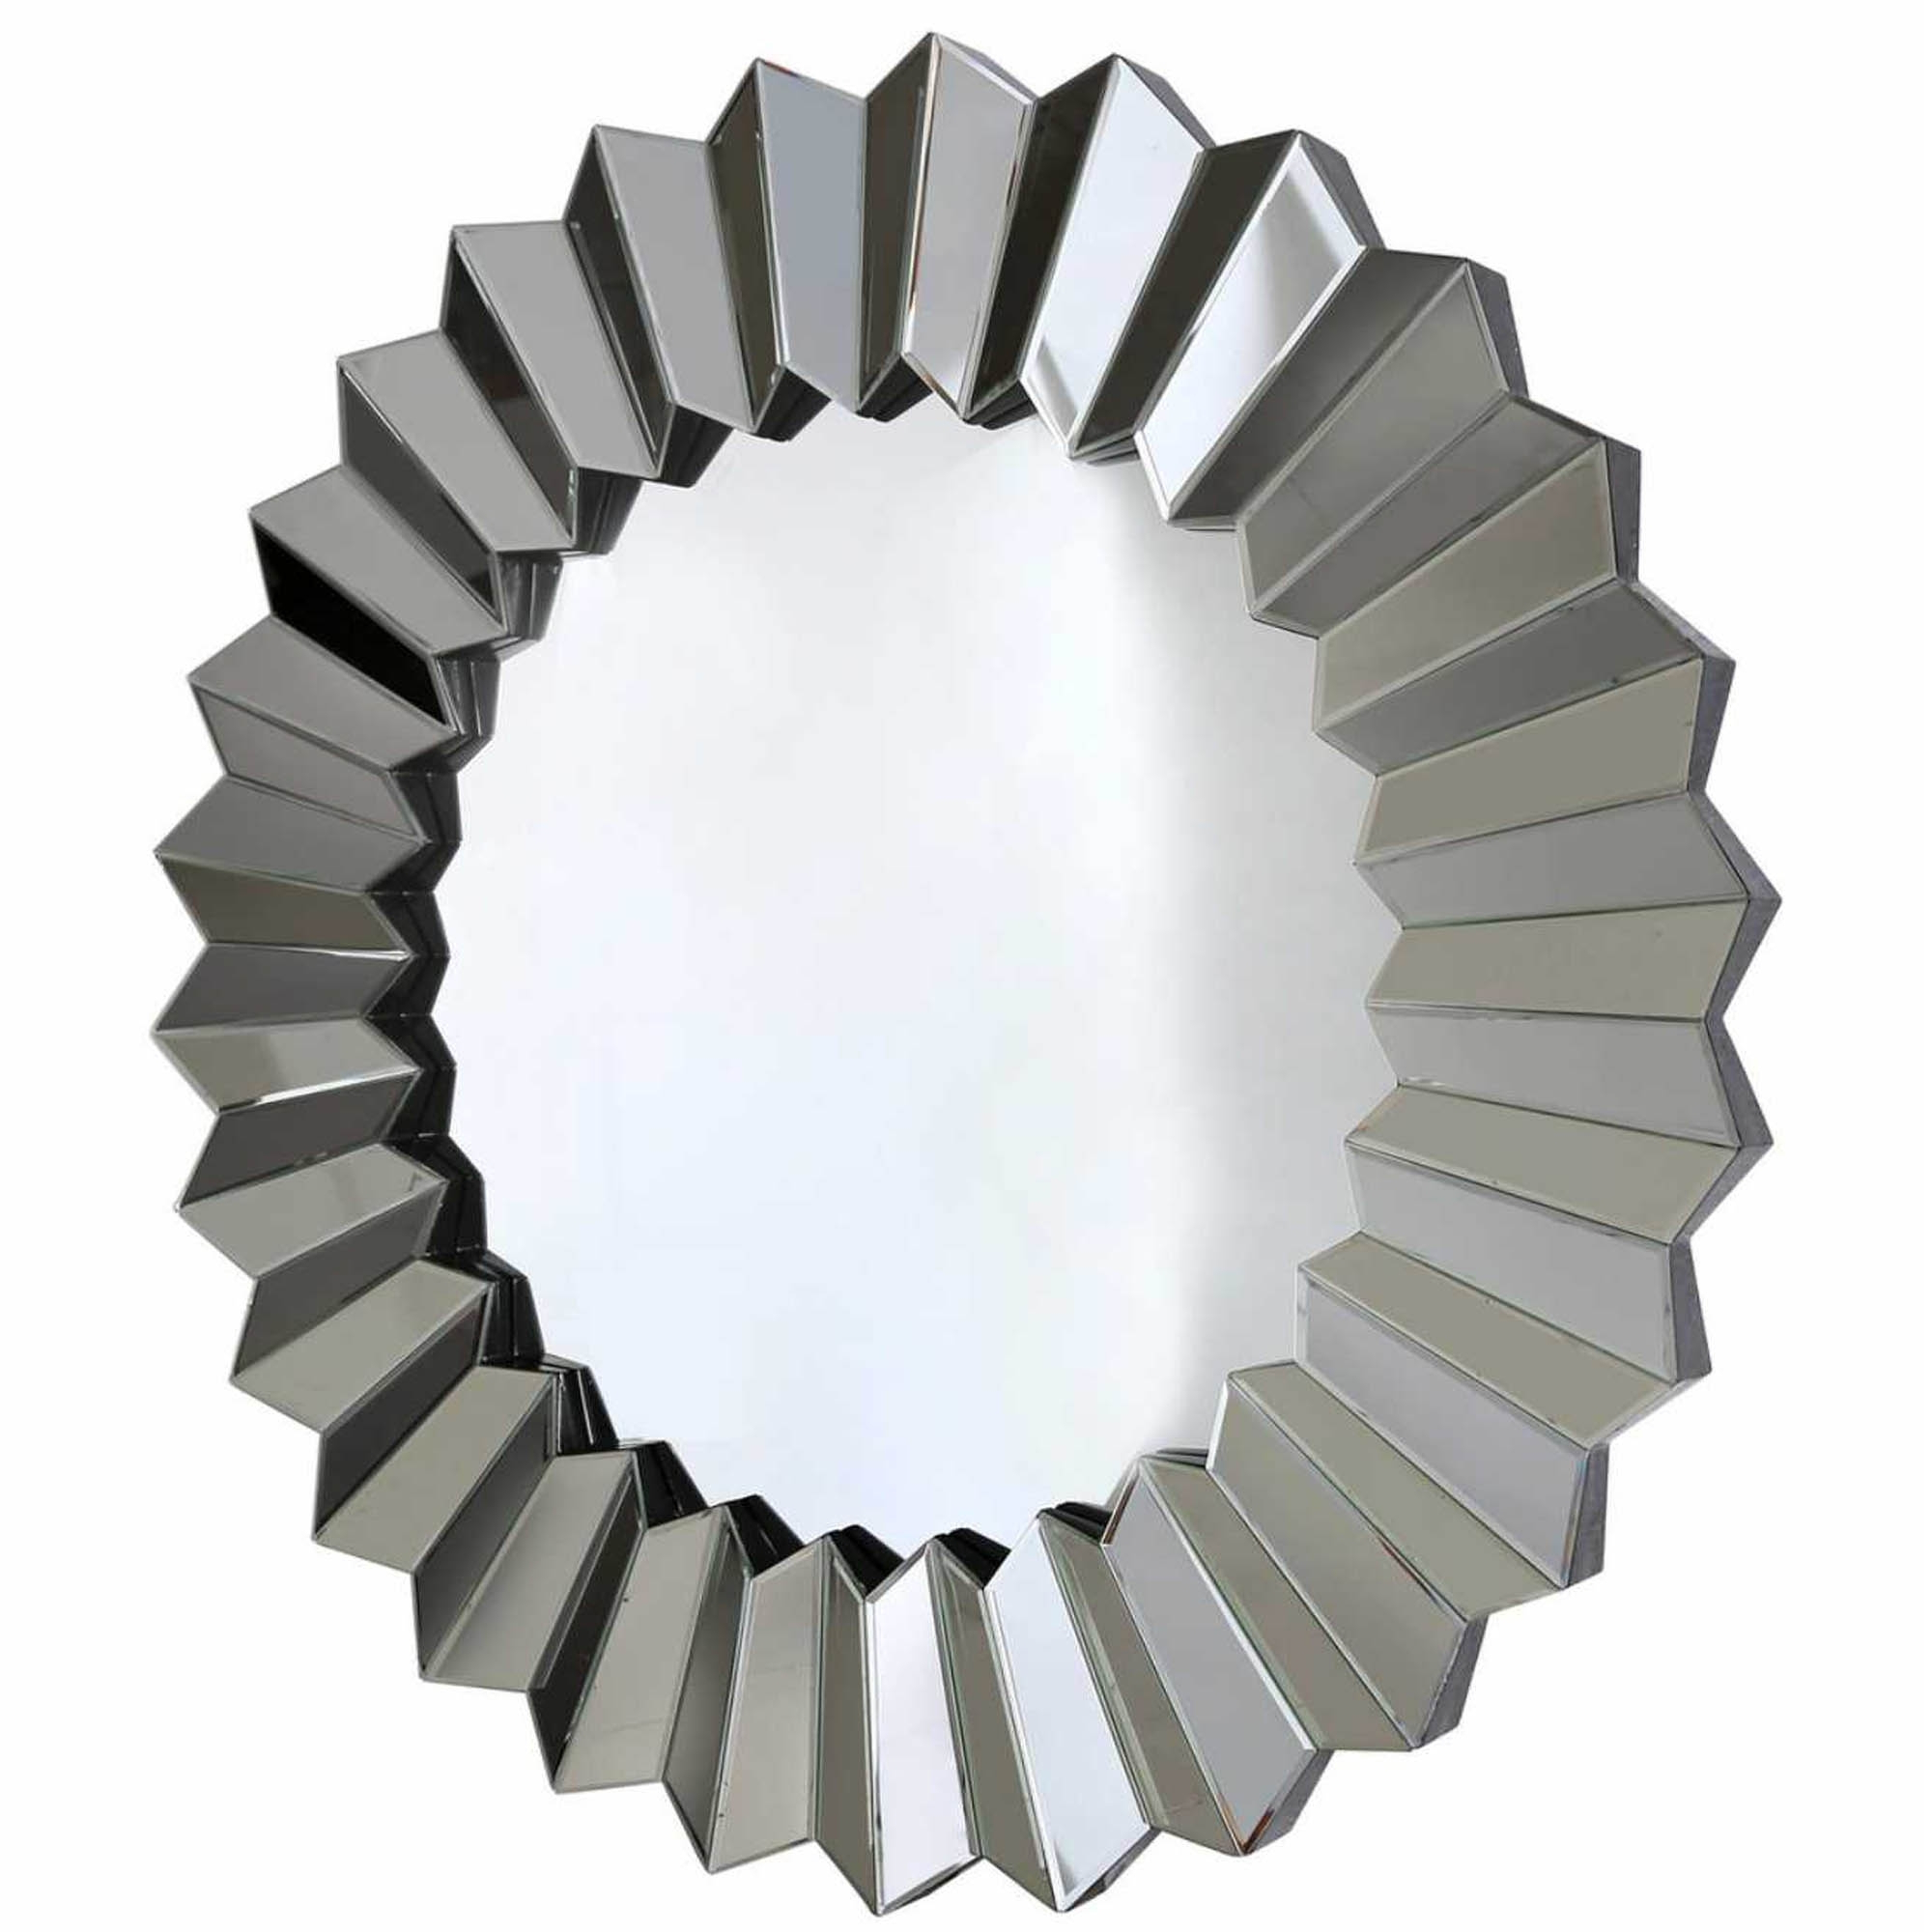 Round Silver Wall Mirrors Inside Well Known Round Silver Wall Mirror (View 12 of 20)